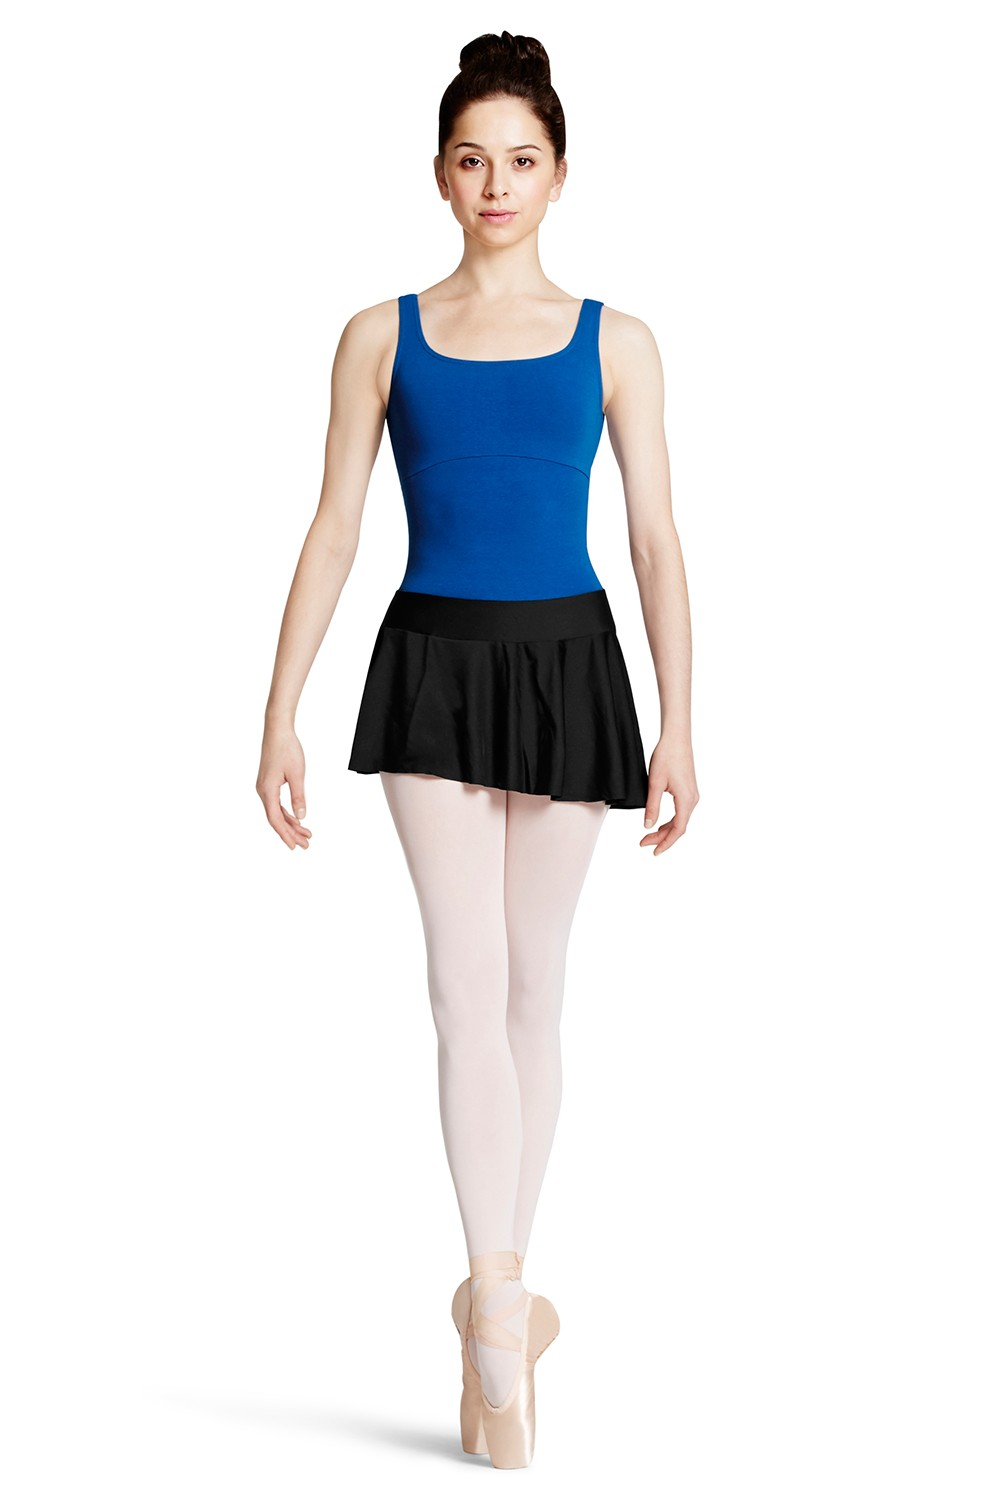 Pull On Hi-low Skirt Women's Dance Skirts